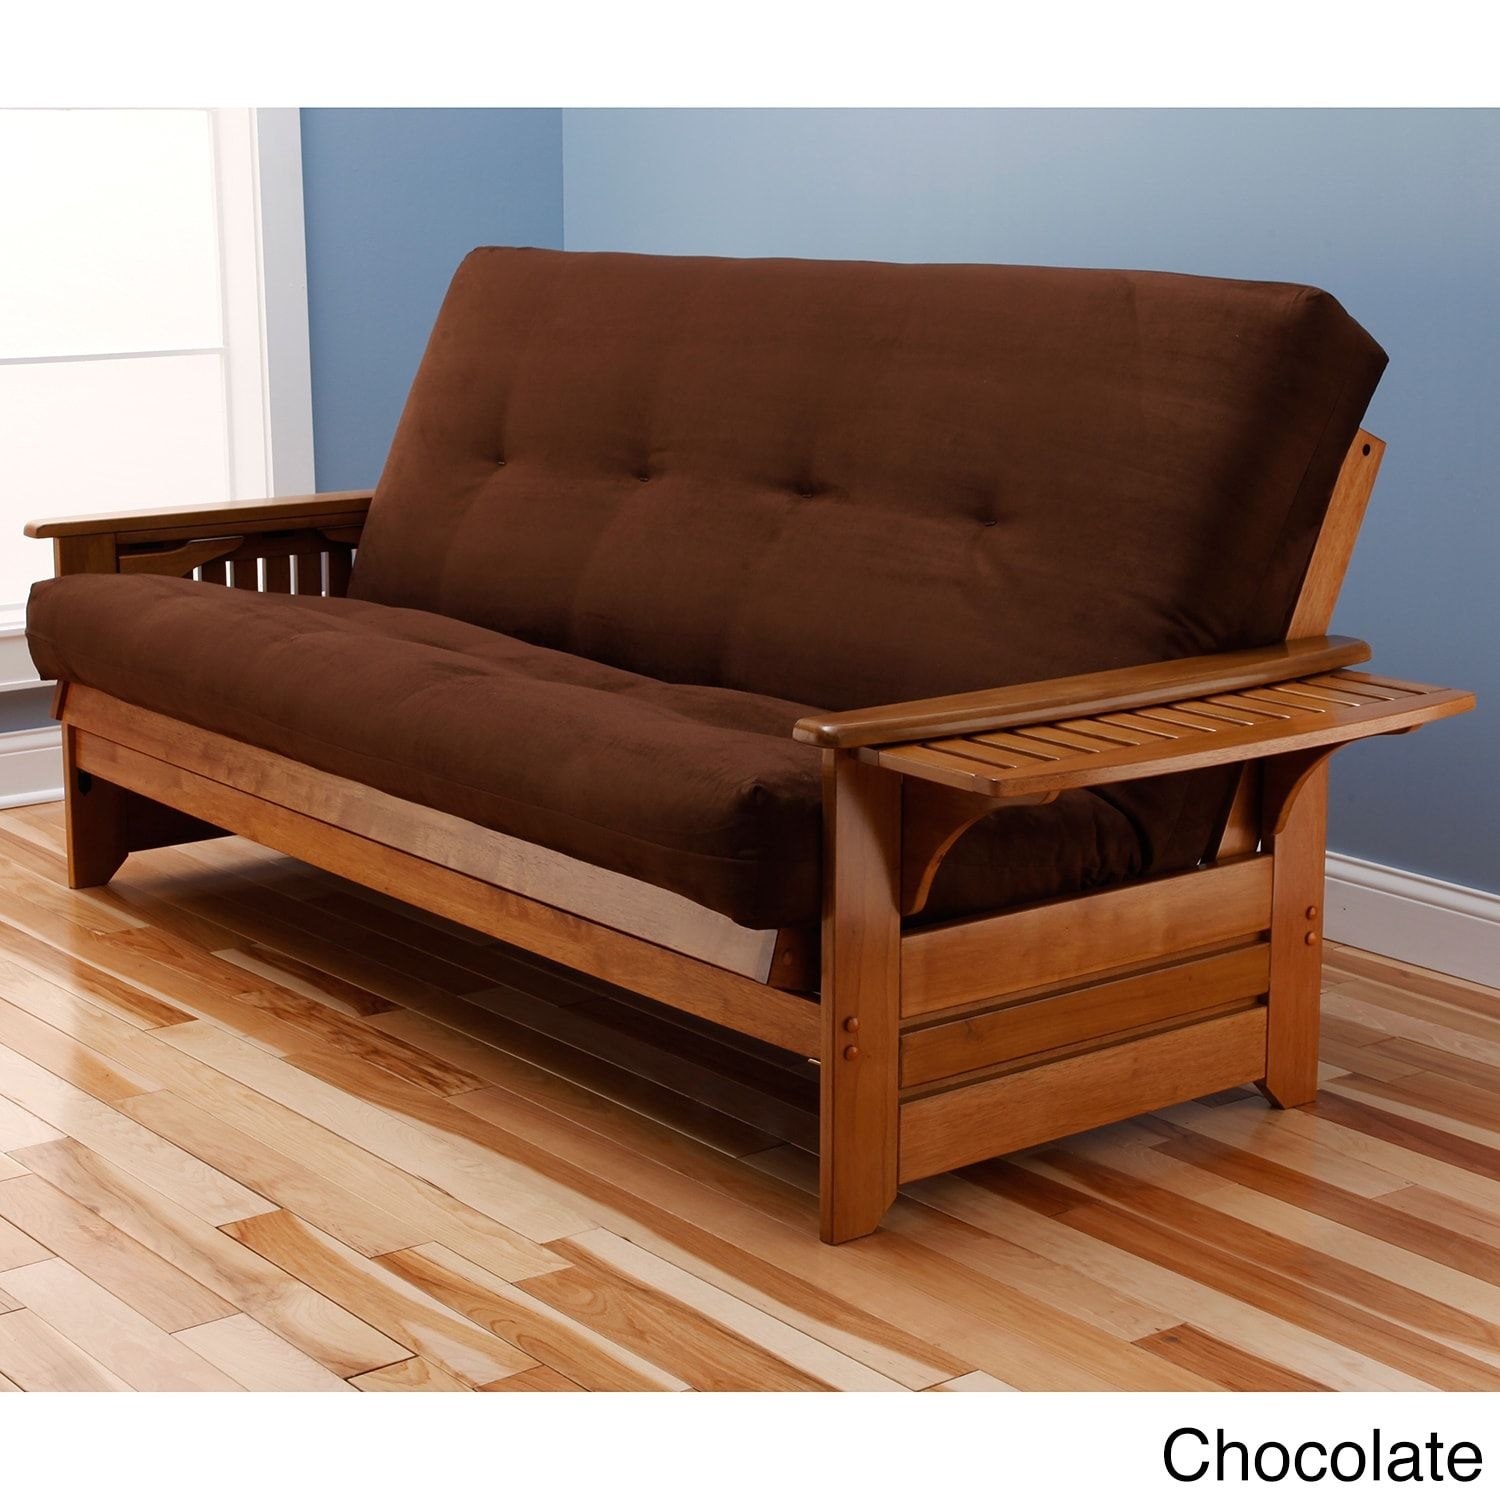 somette ali phonics multi flex honey oak full size wood futon frame